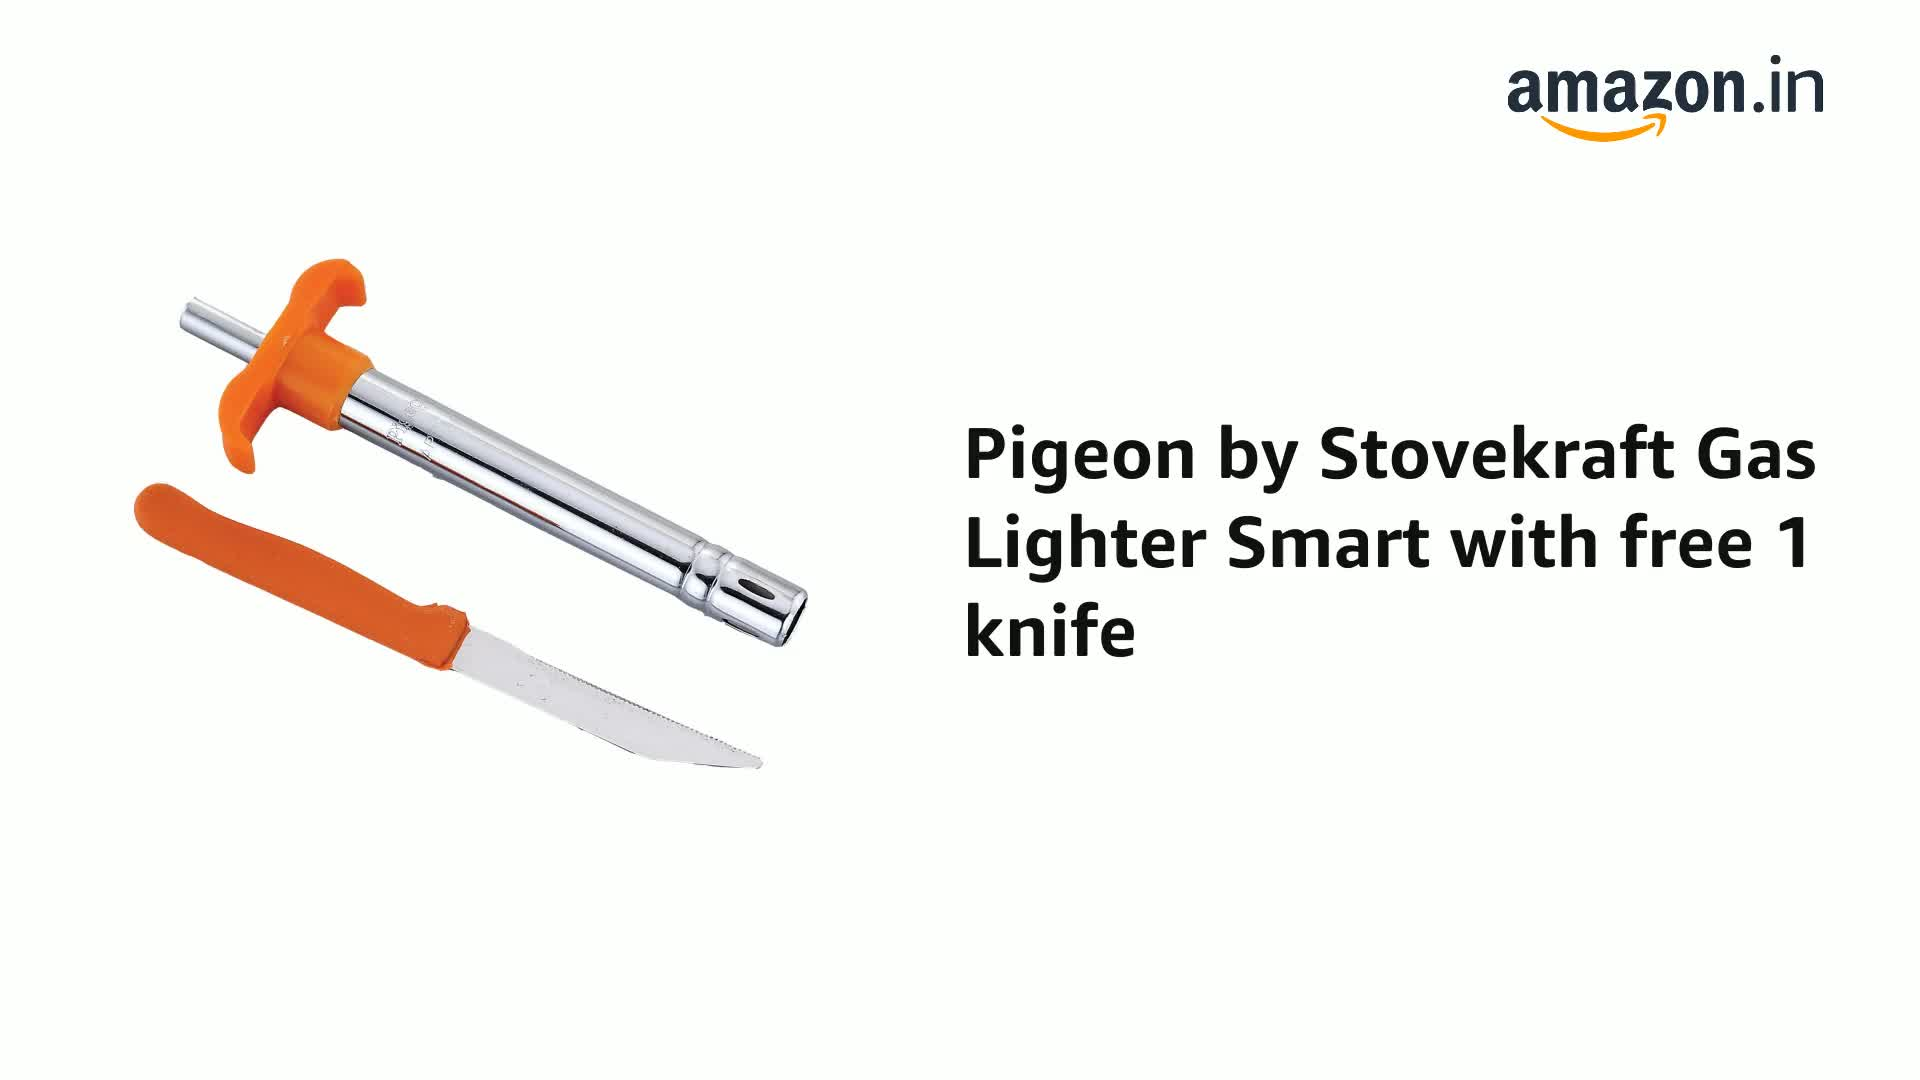 Pigeon-by-Stovekraft-Gas-Lighter-Smart-with-free-1-knife